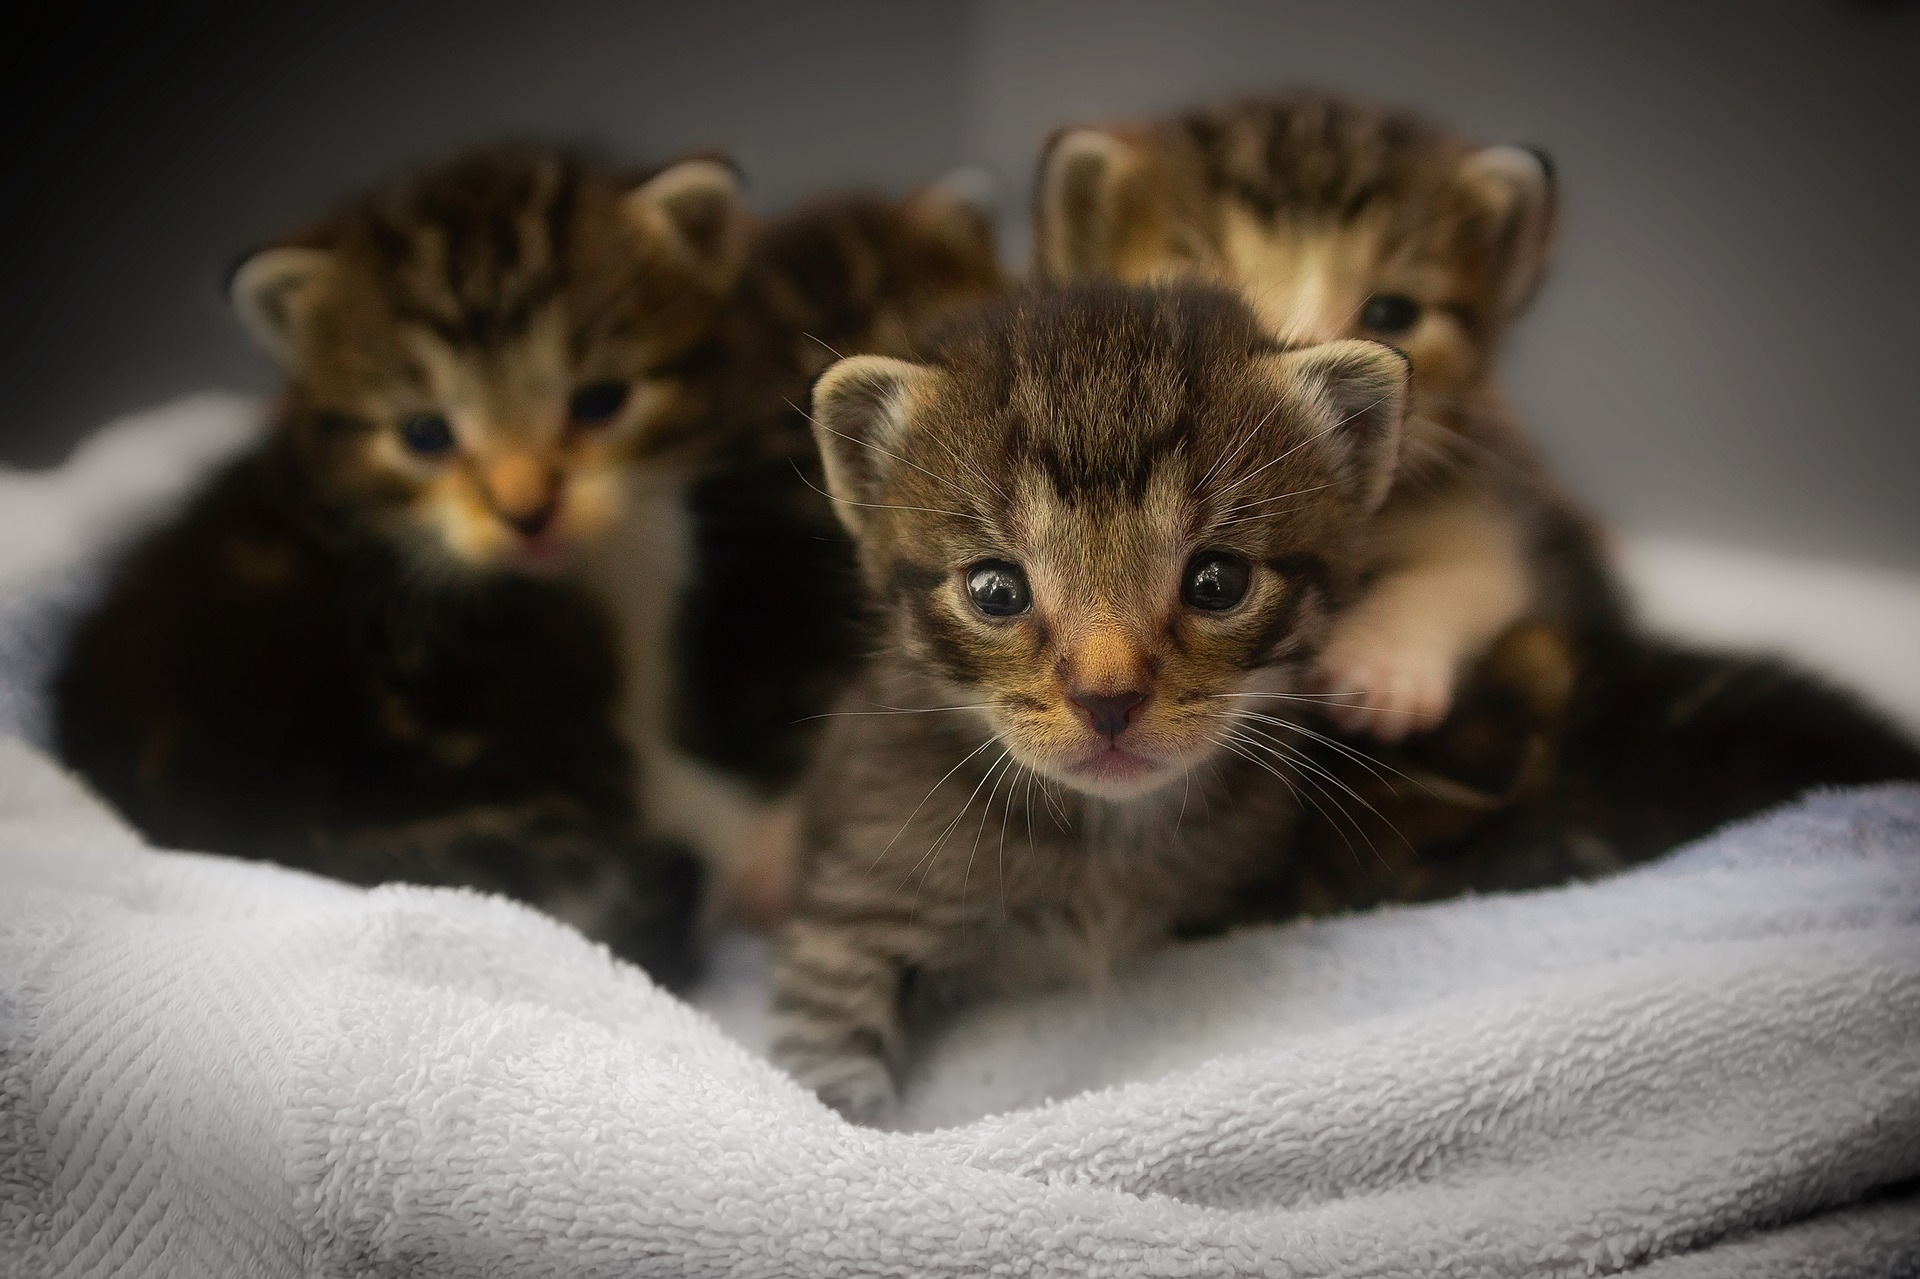 image four young kittens in a soft container